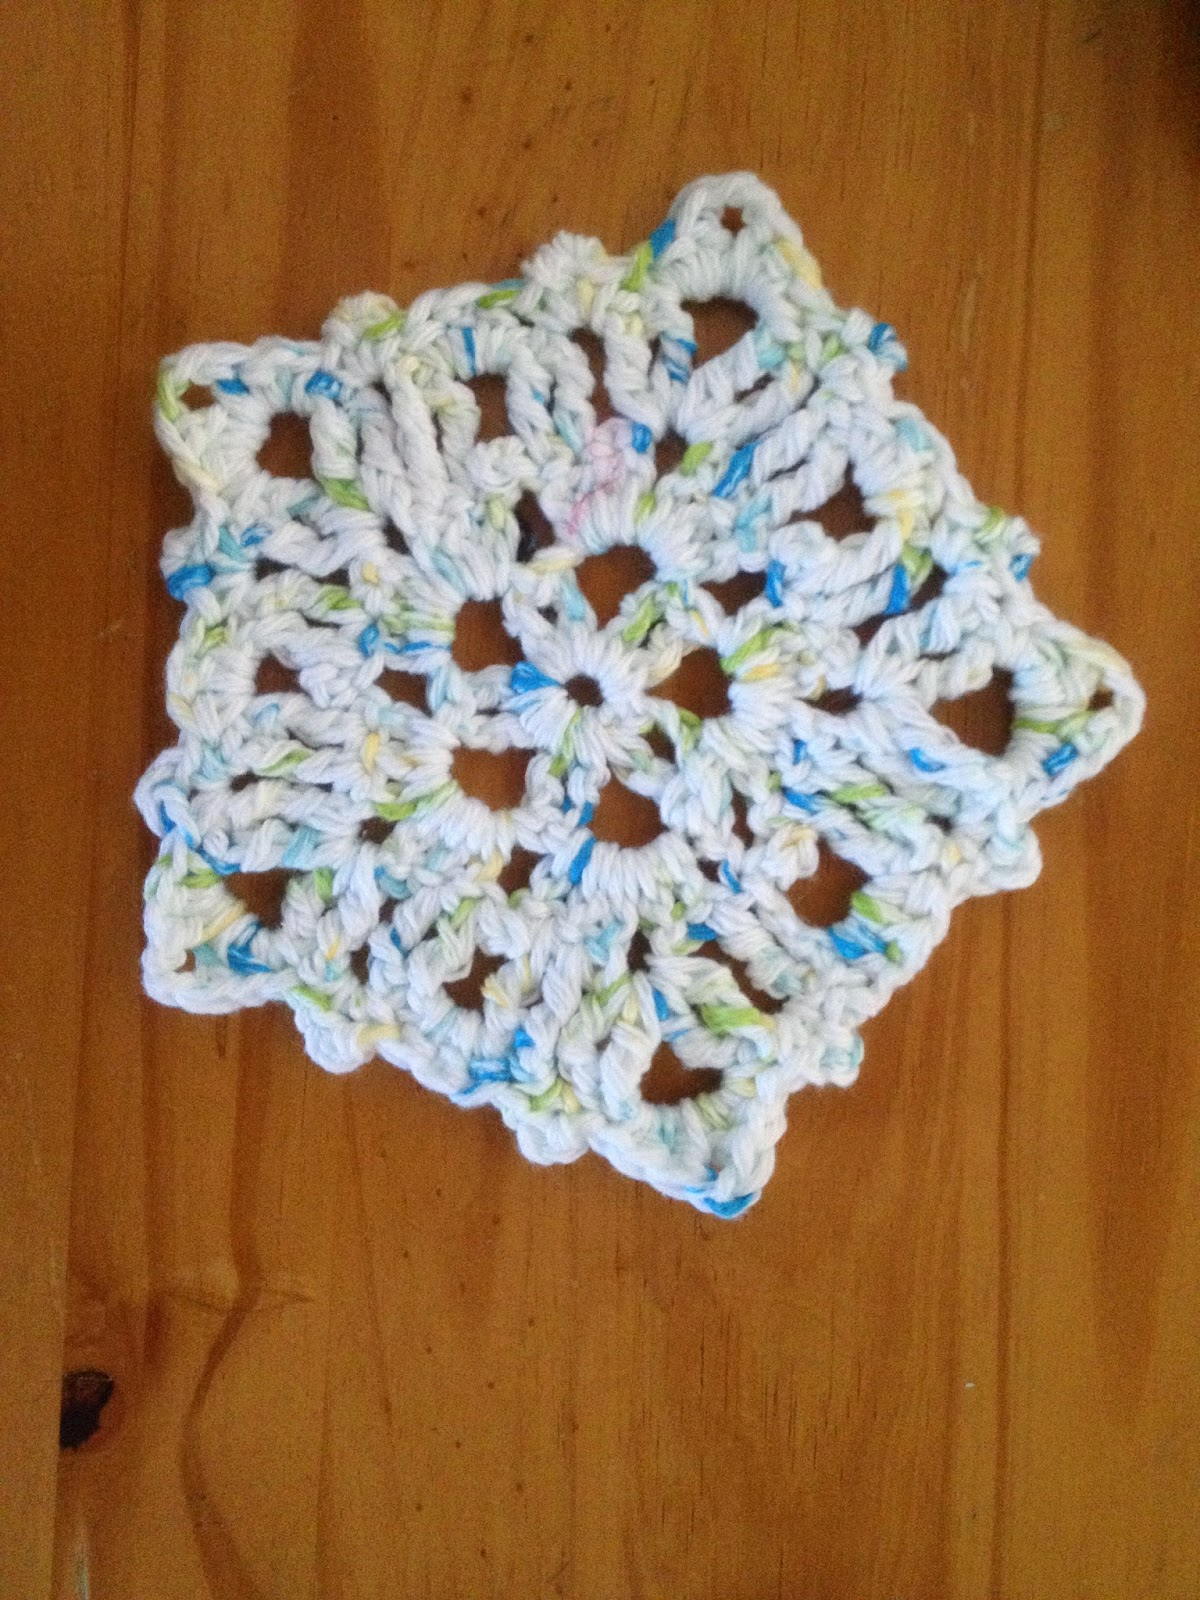 Crochet Stitches Trc : MandaLynns Crochet Treasures : Crochet Snow Flake Dish Cloth